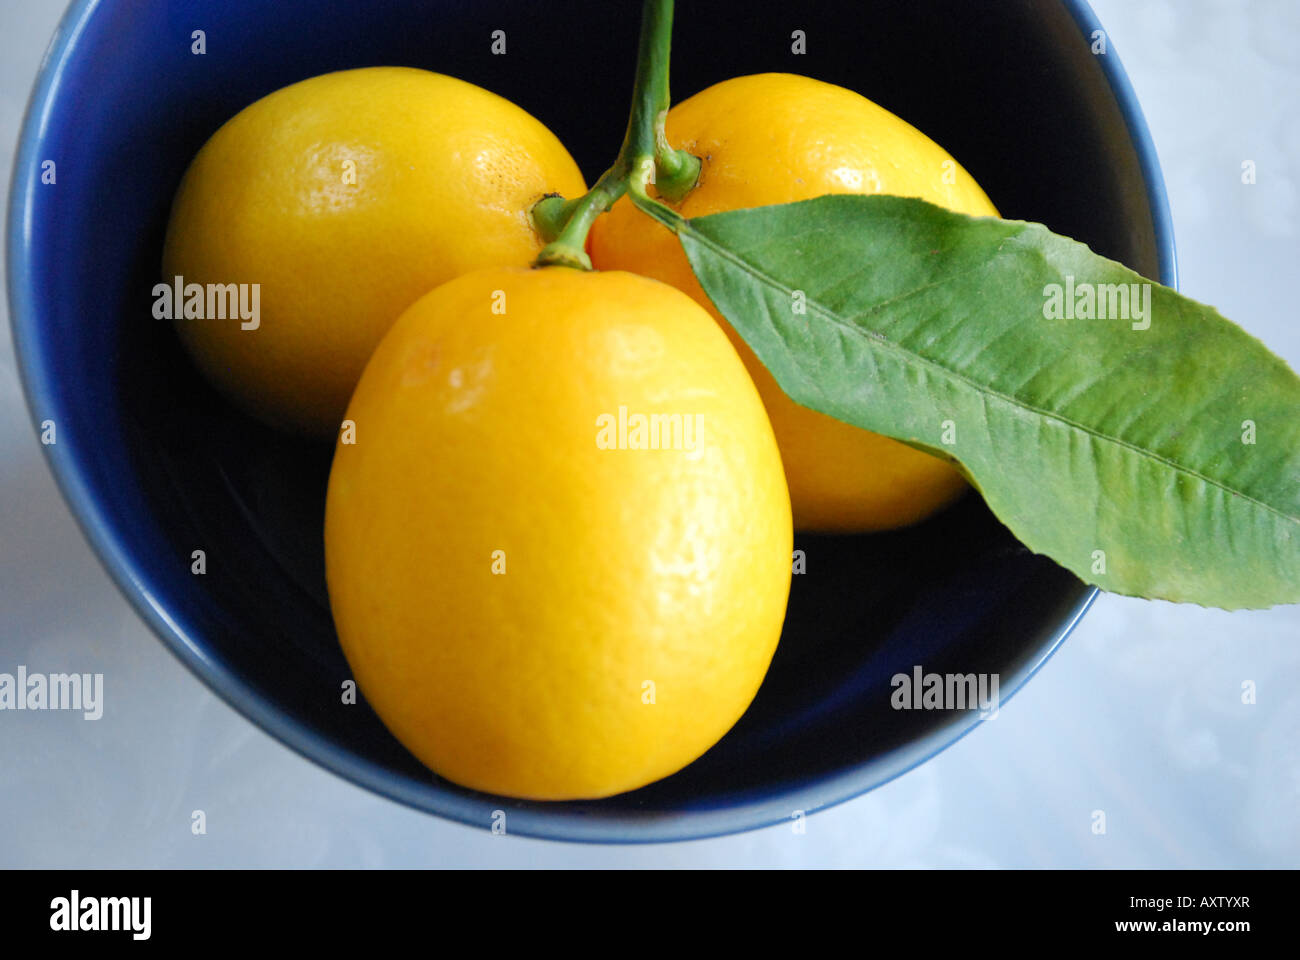 california-meyer-lemons-in-a-ceramic-bow